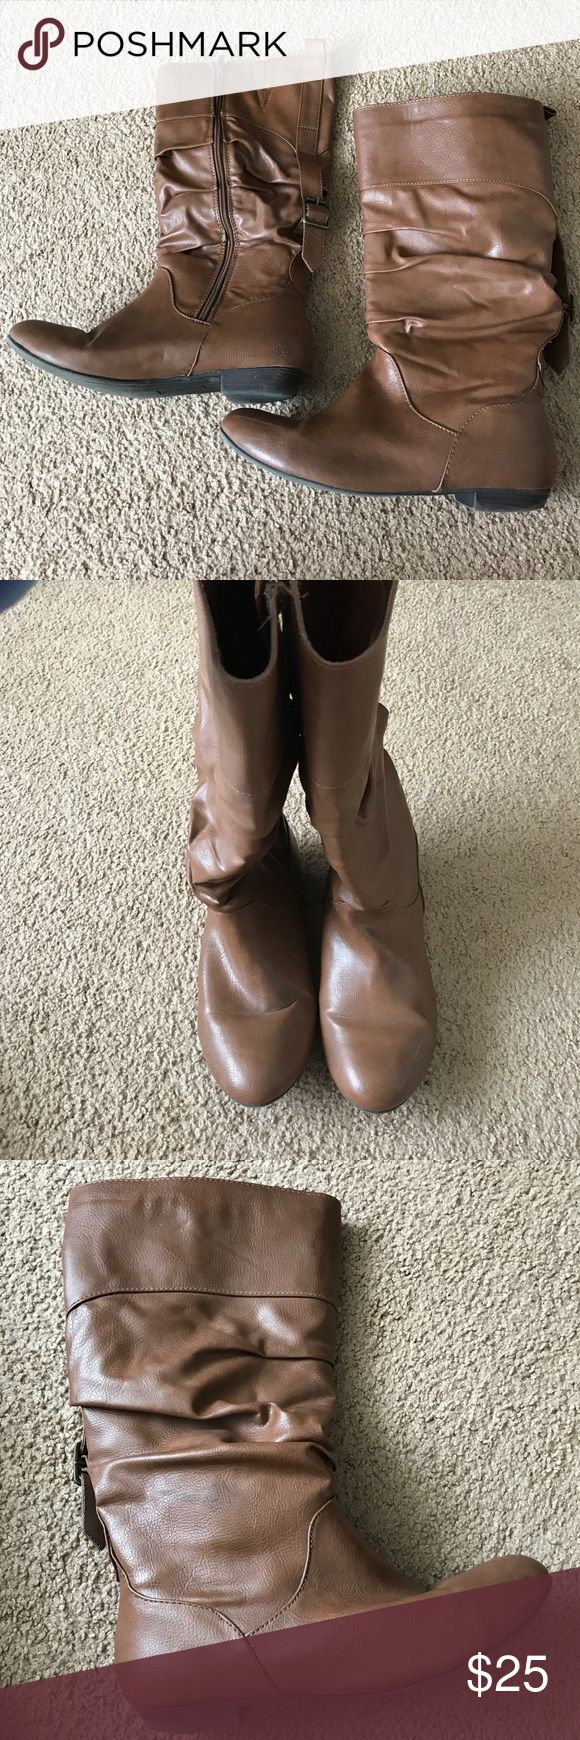 Express Brown Zip Up Boots Gently worn Express brown boots. Size 8. Made from man made materials. In good condition and perfect for dressing up your Fall outfits--please refer to pictures for more details. Some wear on heel and sides of shoes. Express Shoes